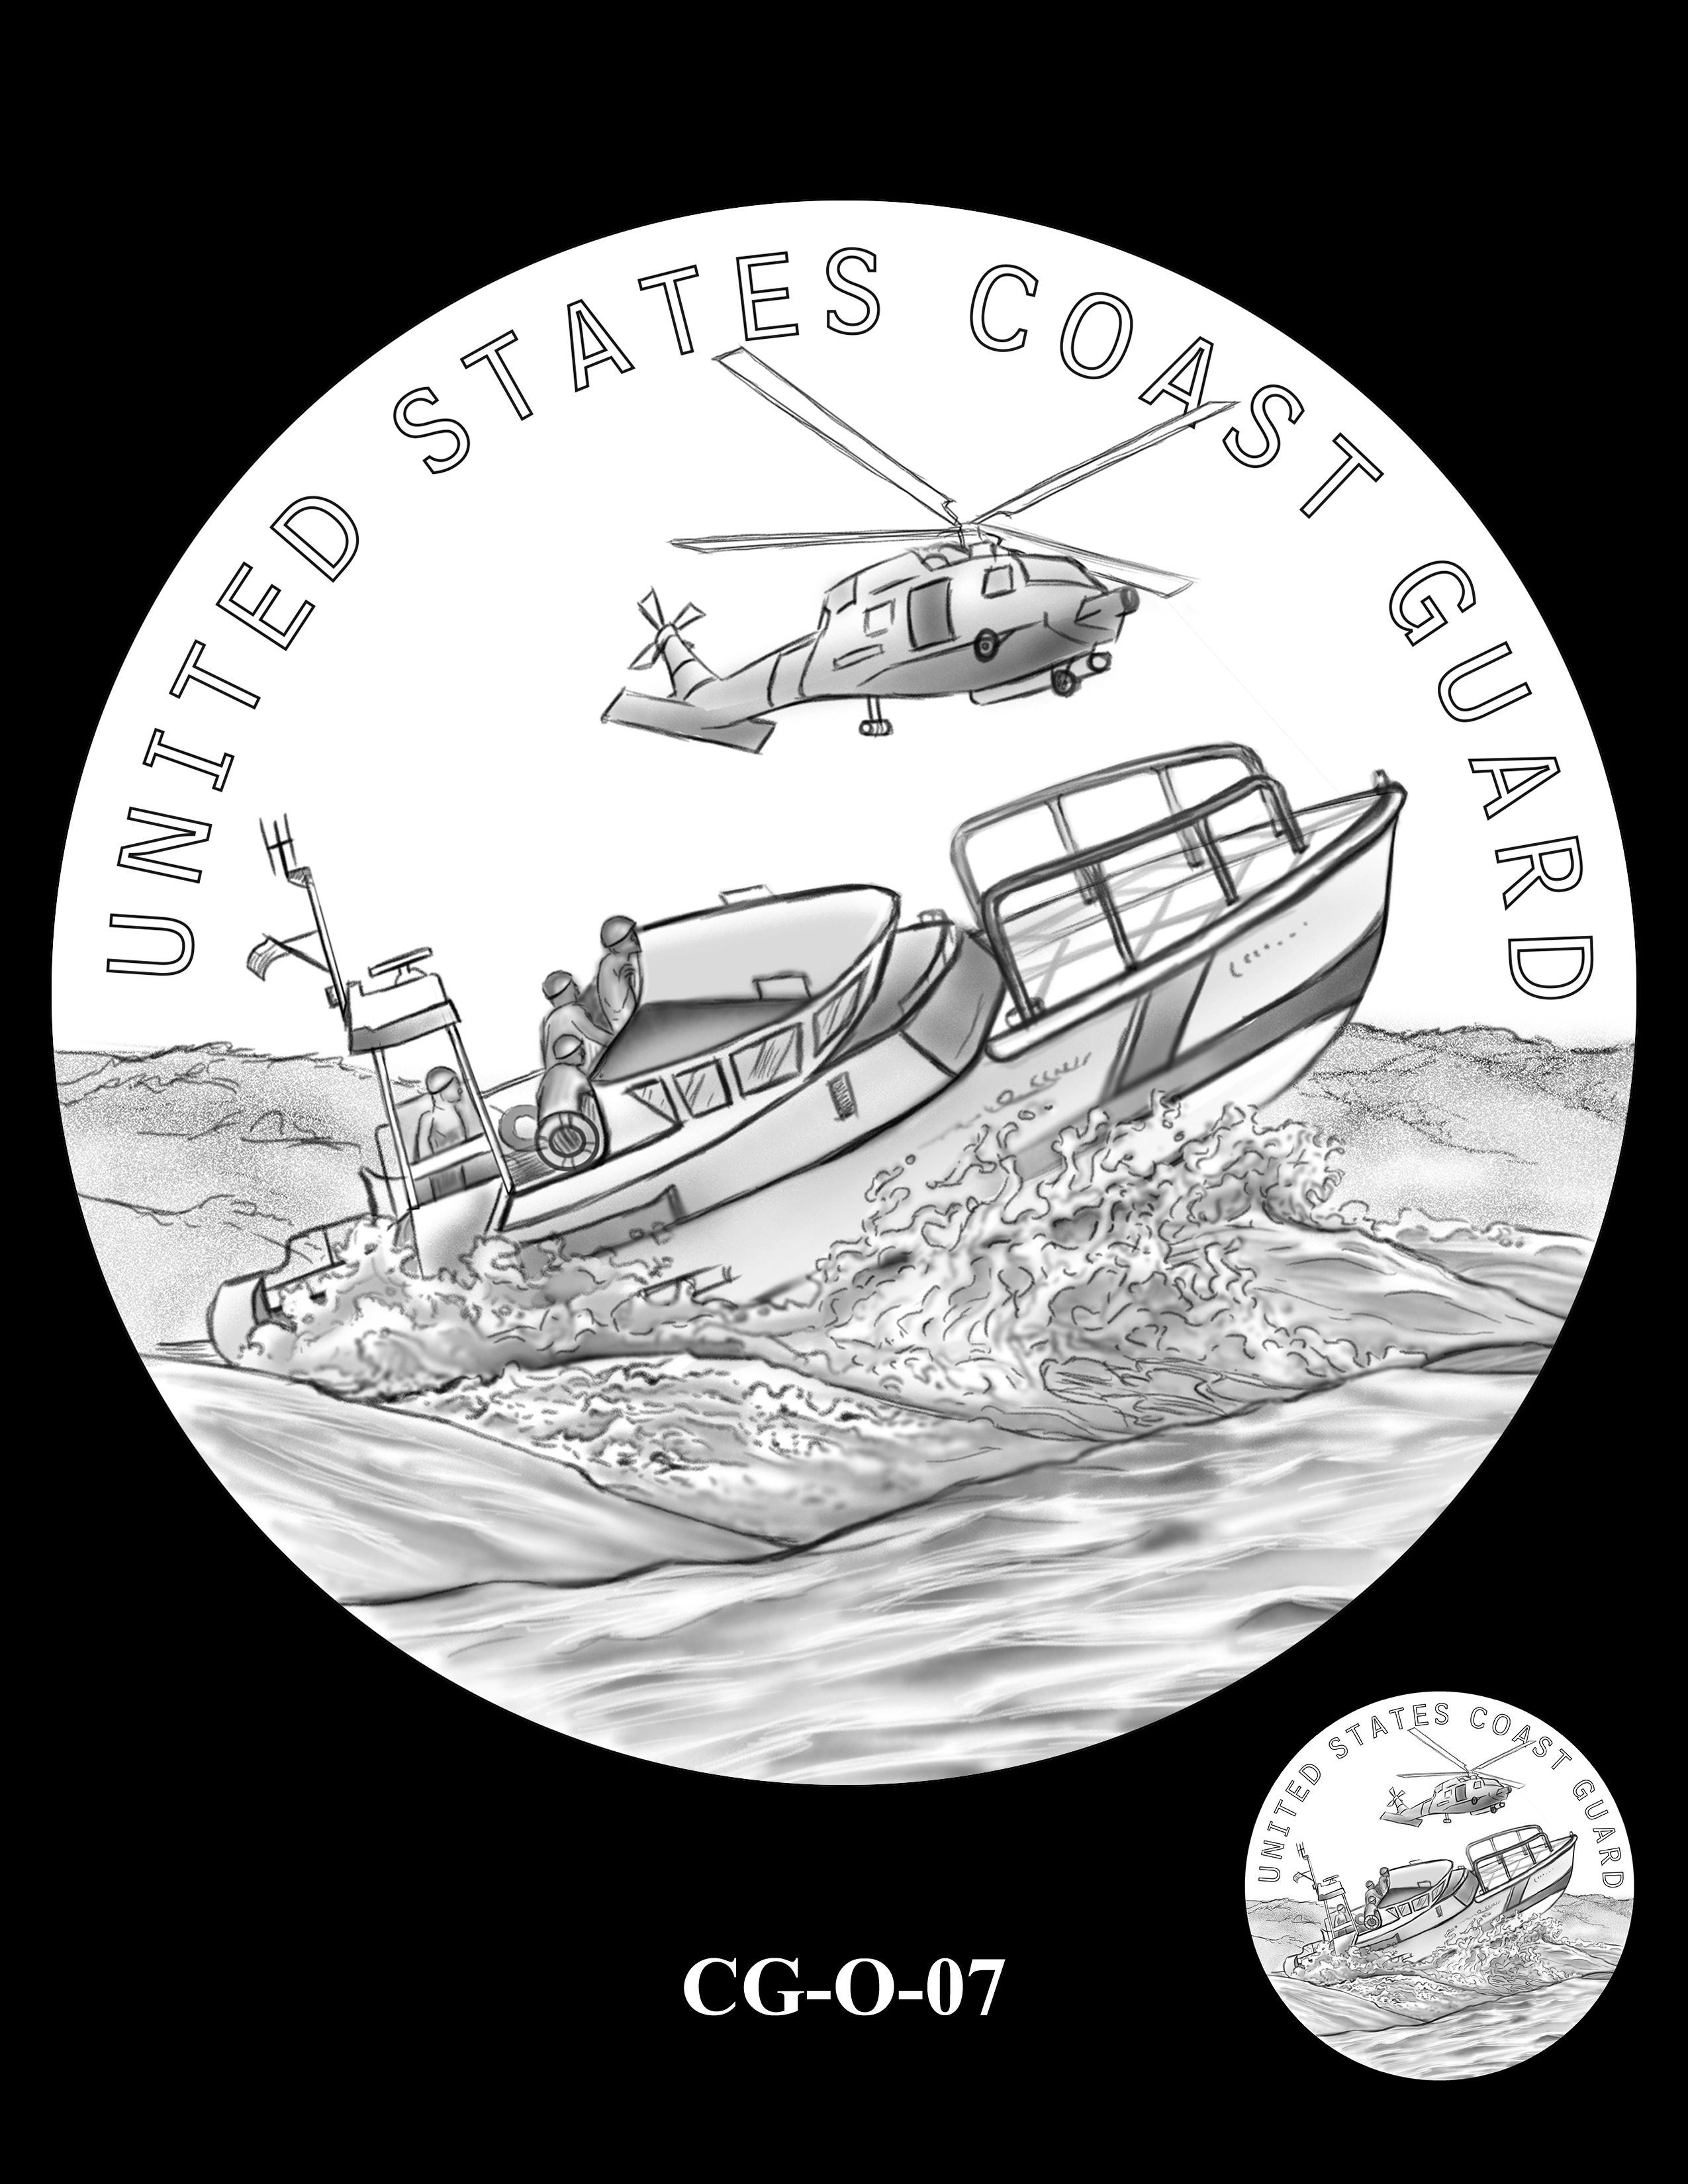 CG-O-07 -- Armed Forces Medal - Coast Guard